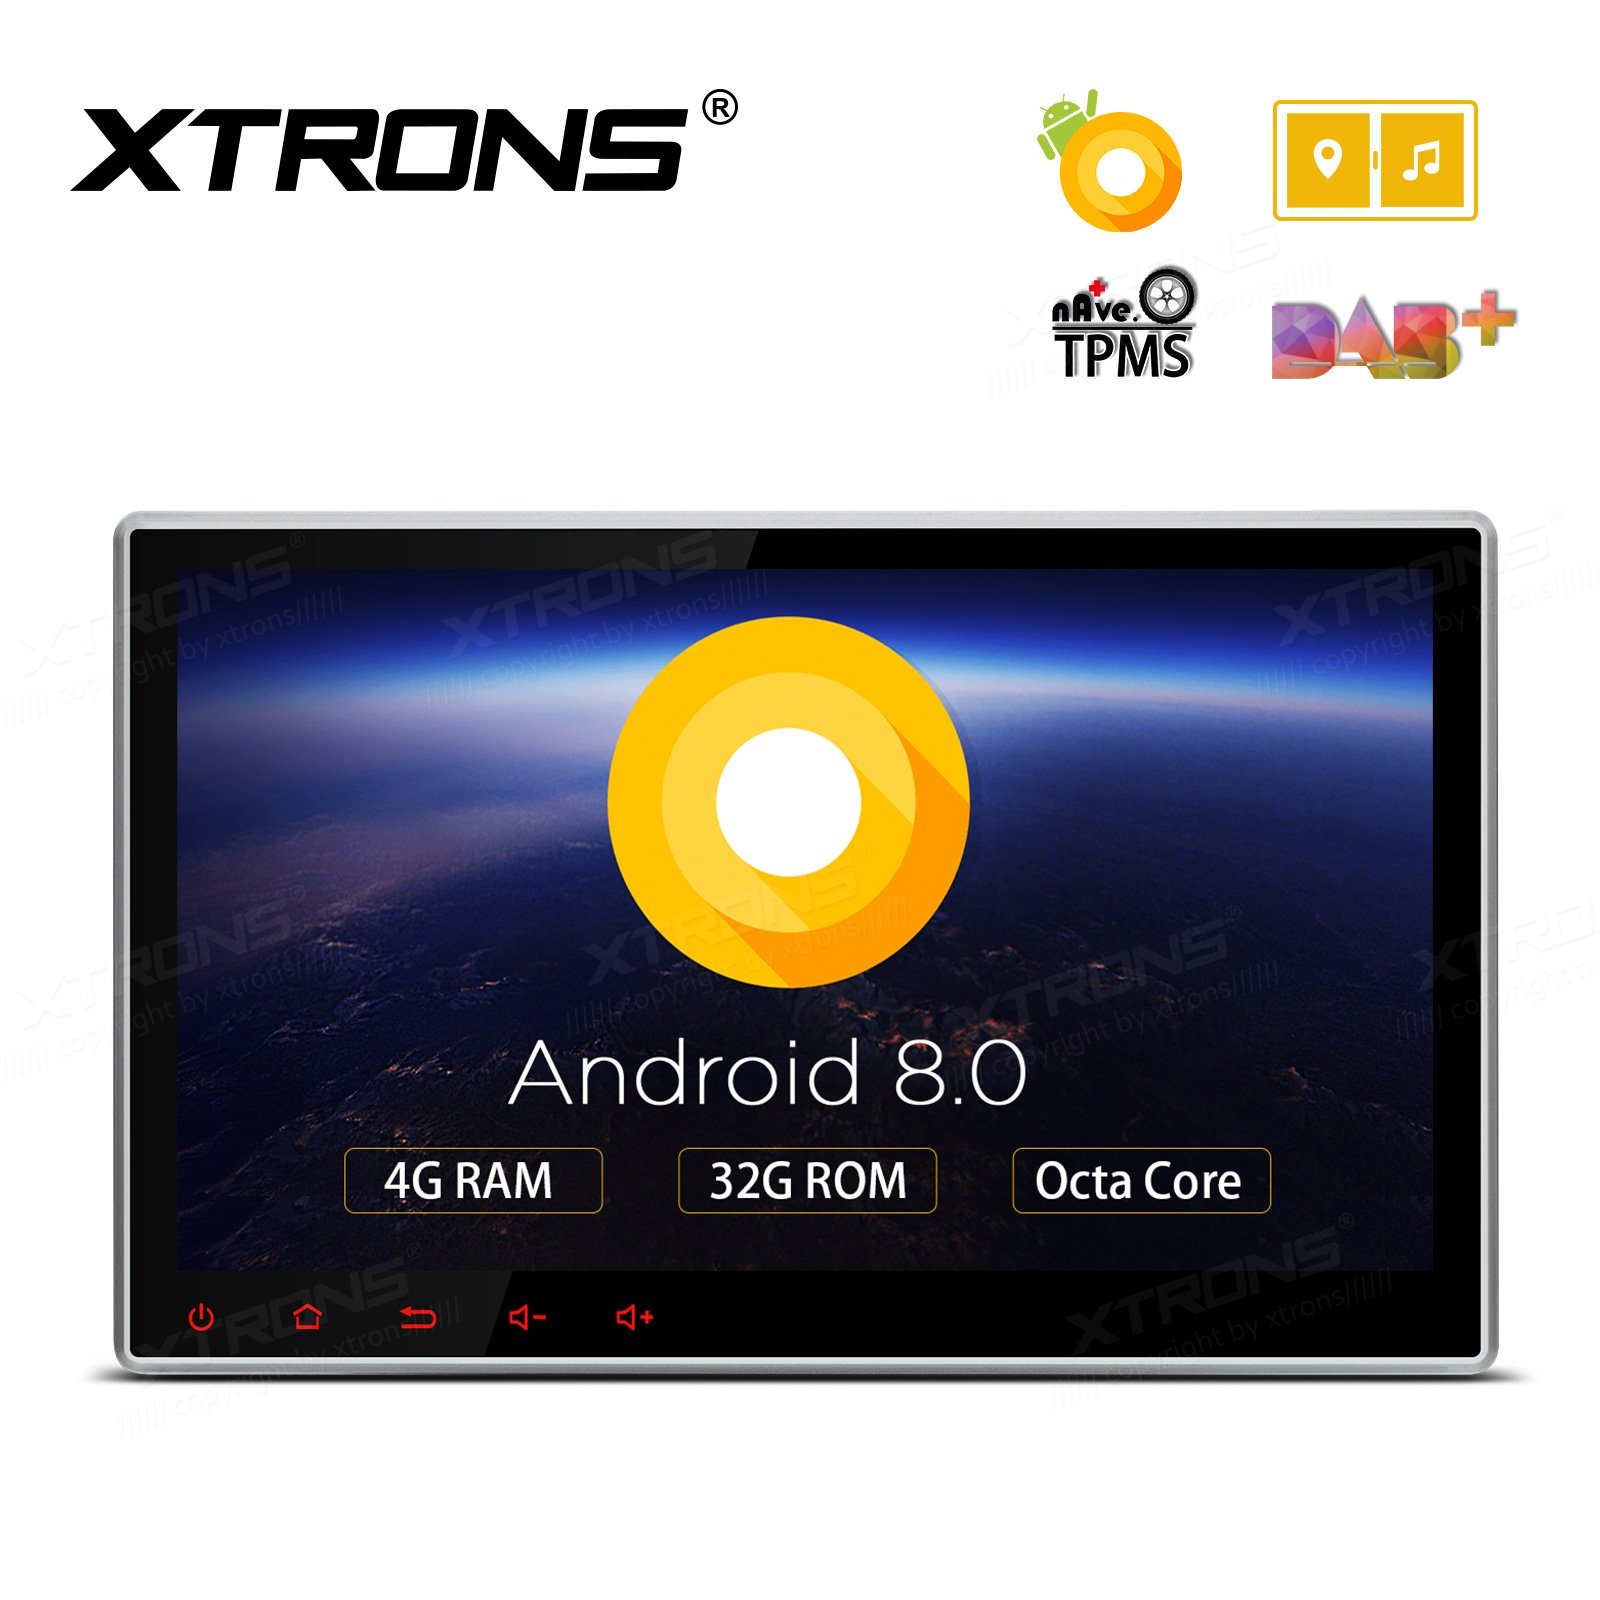 XTRONS 10.1 Inch Android 8.0 Octa Core 4G RAM 32G ROM HD Digital Multi-touch Screen Car Stereo GPS Radio DVD Player Adjustable Viewing Angles OBD2 TPMS Wifi